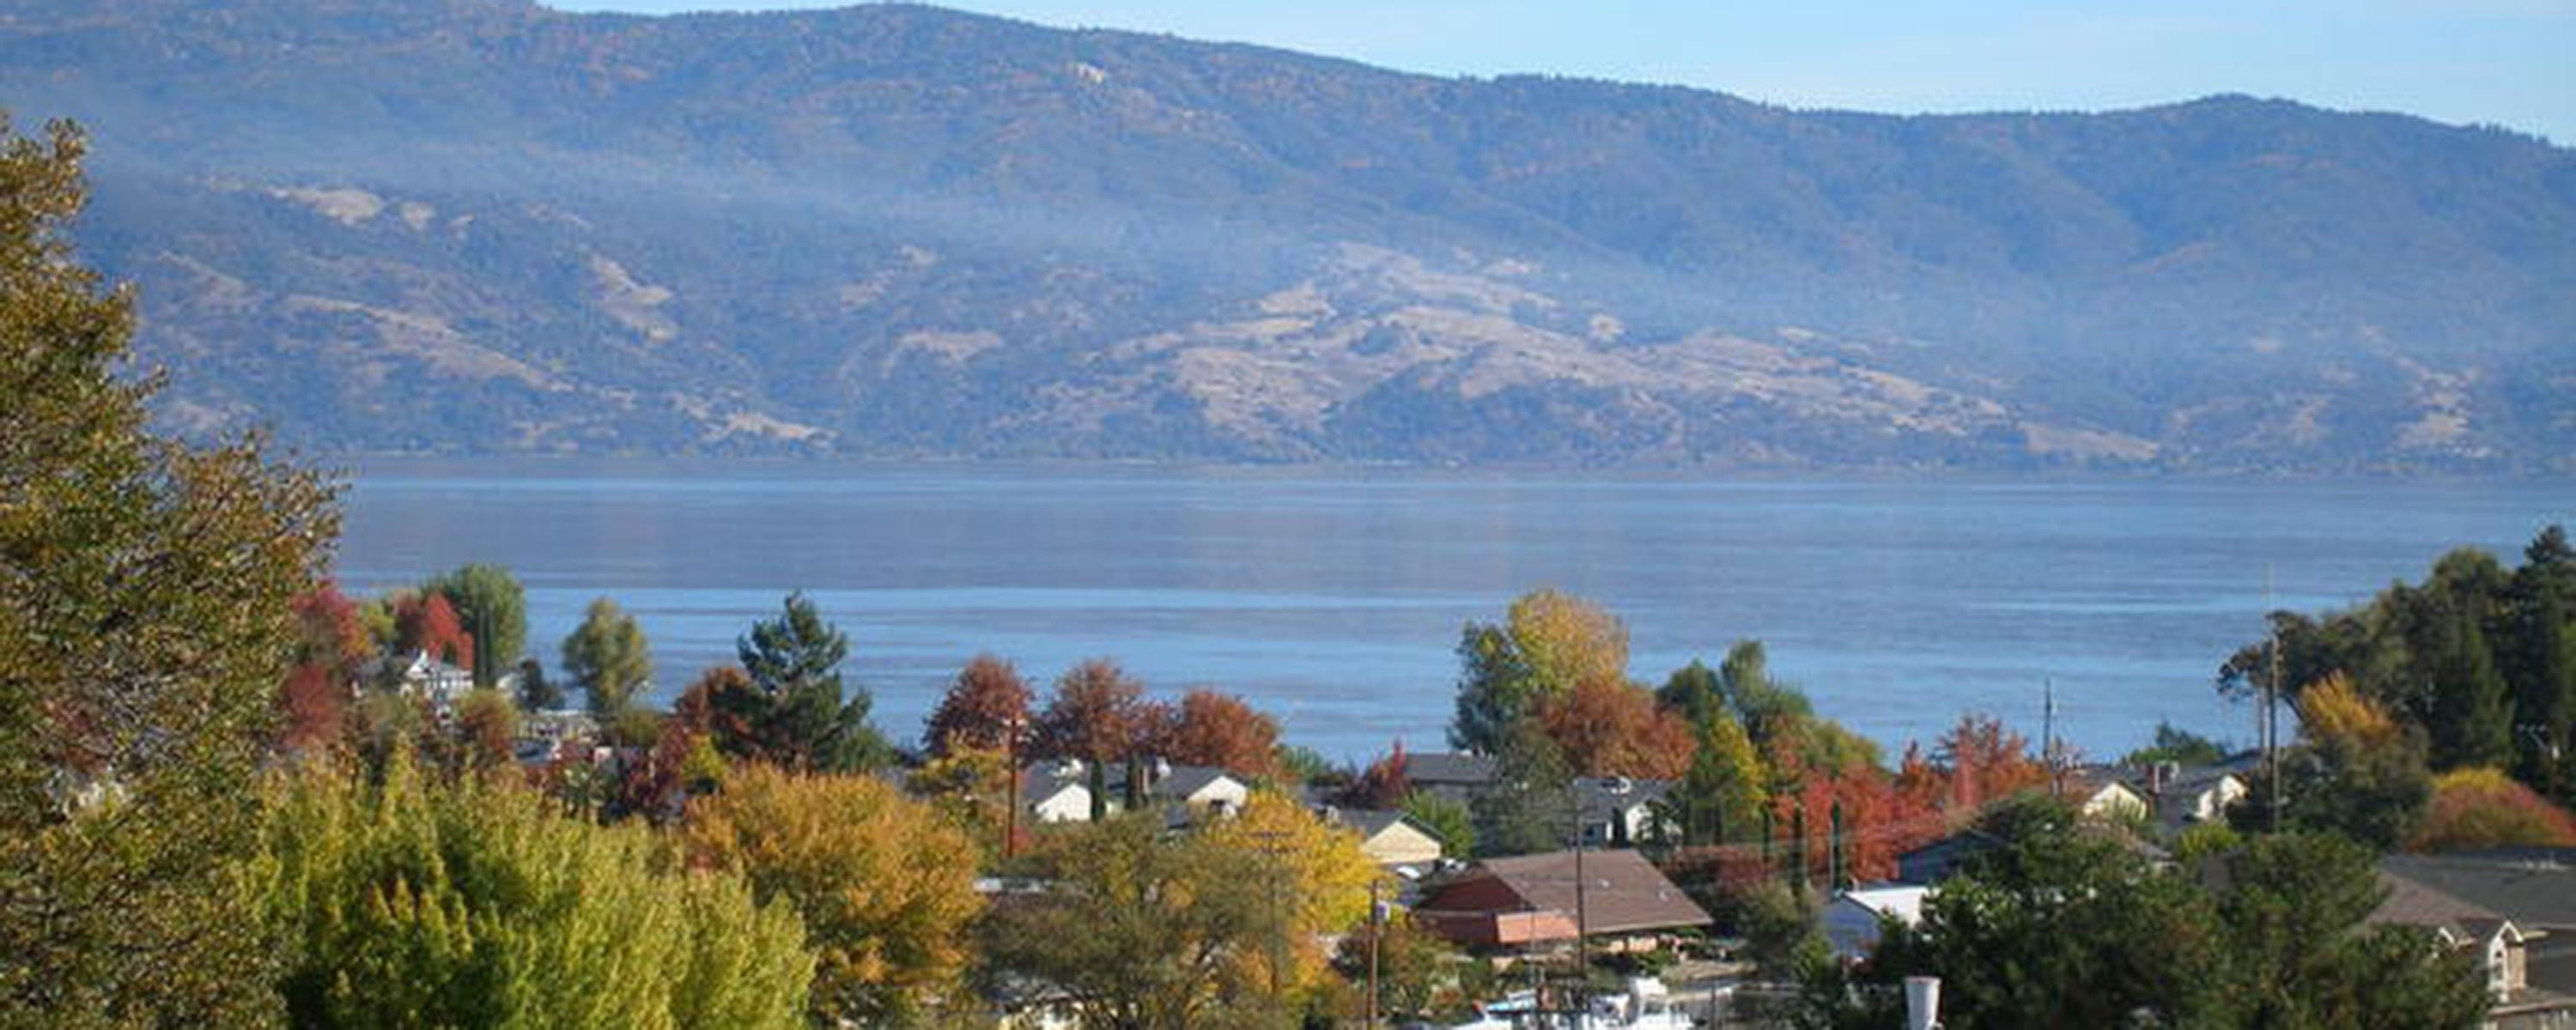 lakeport-in-the-fall